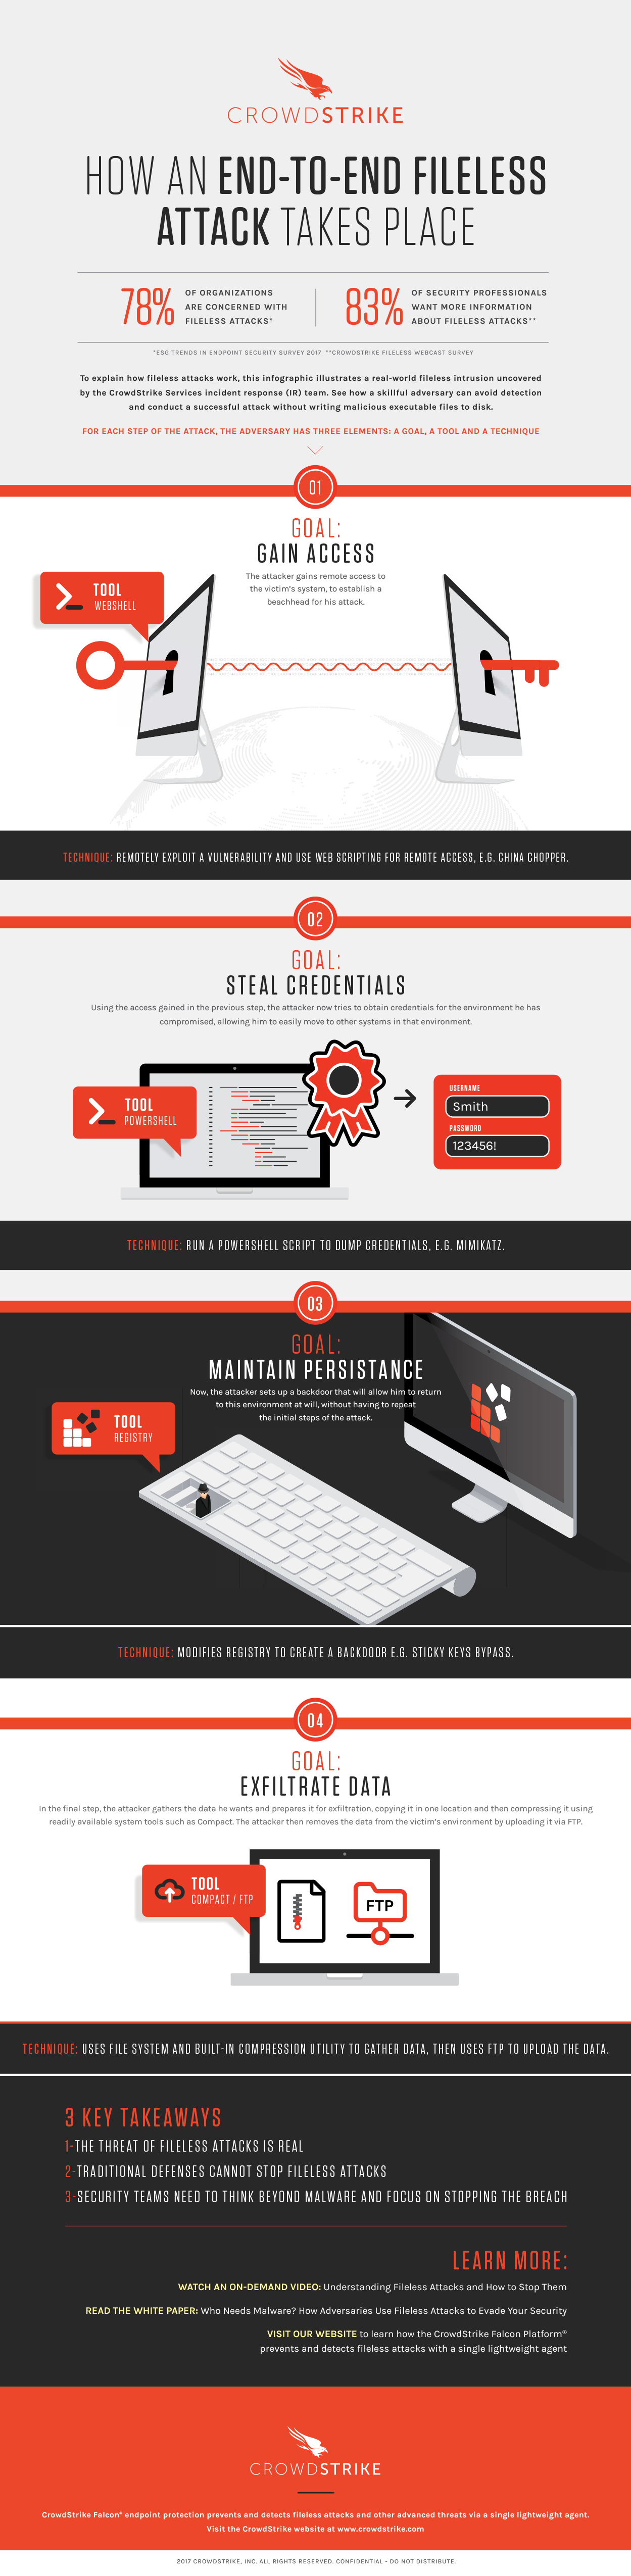 fileless ransomware infographic